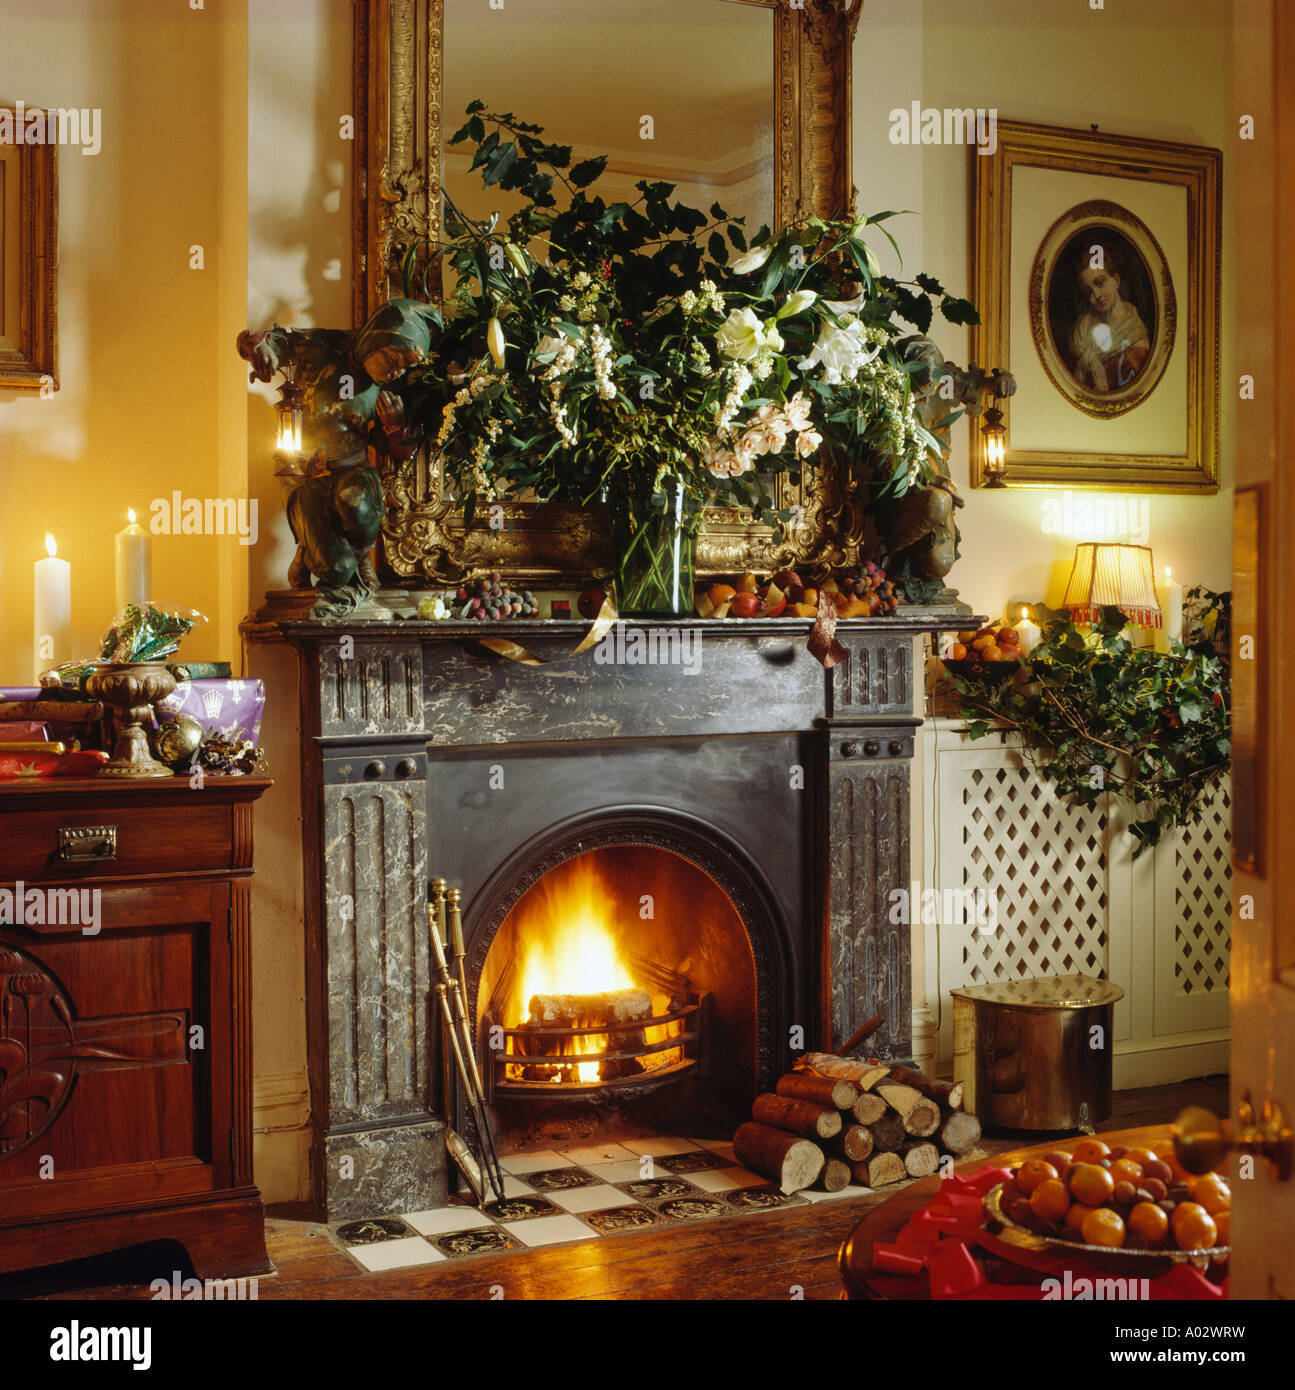 cast iron traditional fireplace in christmas livingroom with lit